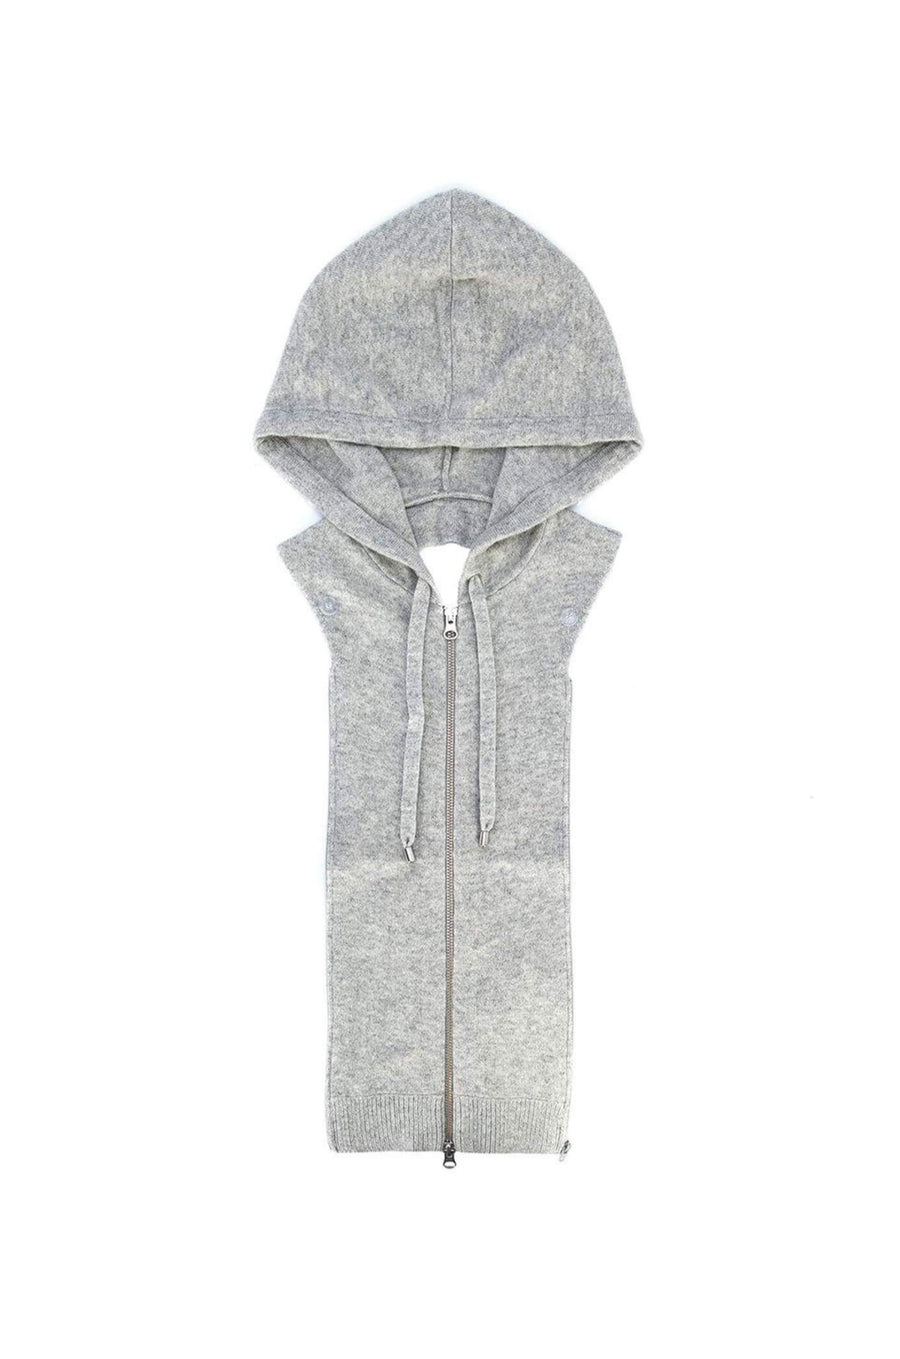 Veronica Beard Cashmere Hoodie Dickey Grey from The New Trend